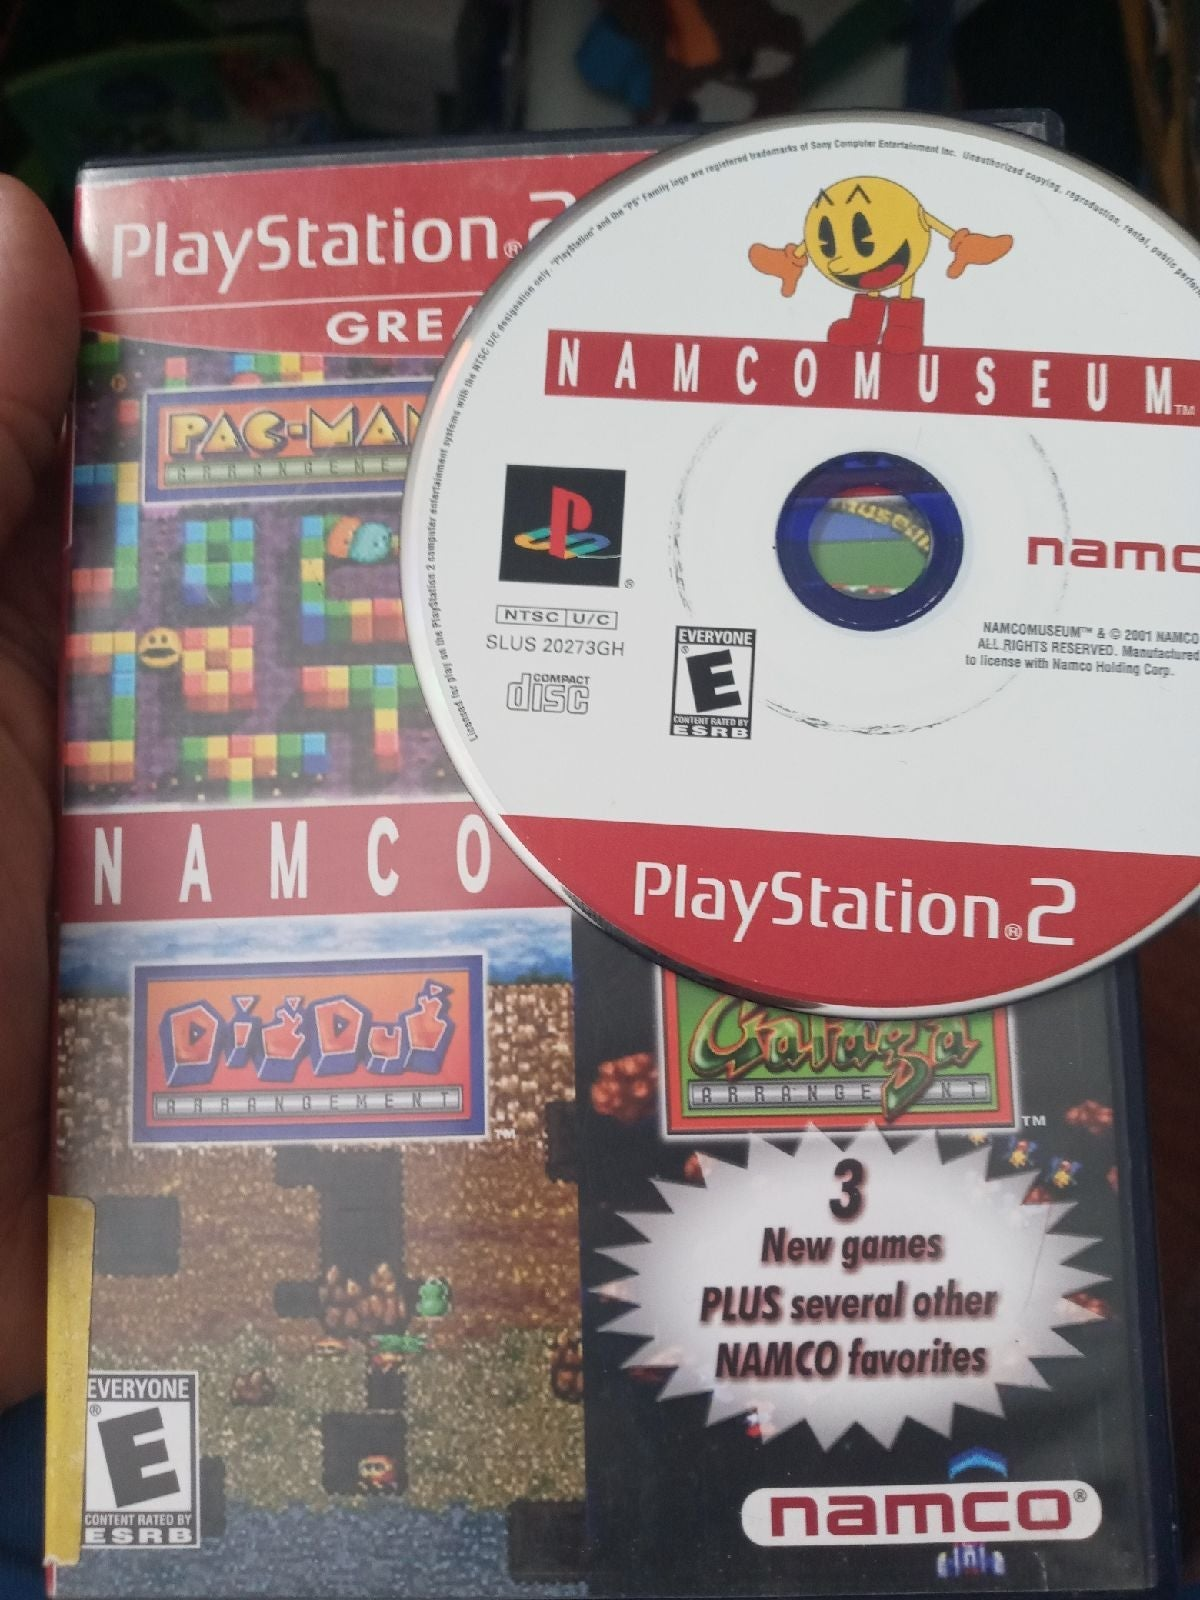 Namco Museum on Playstation 2